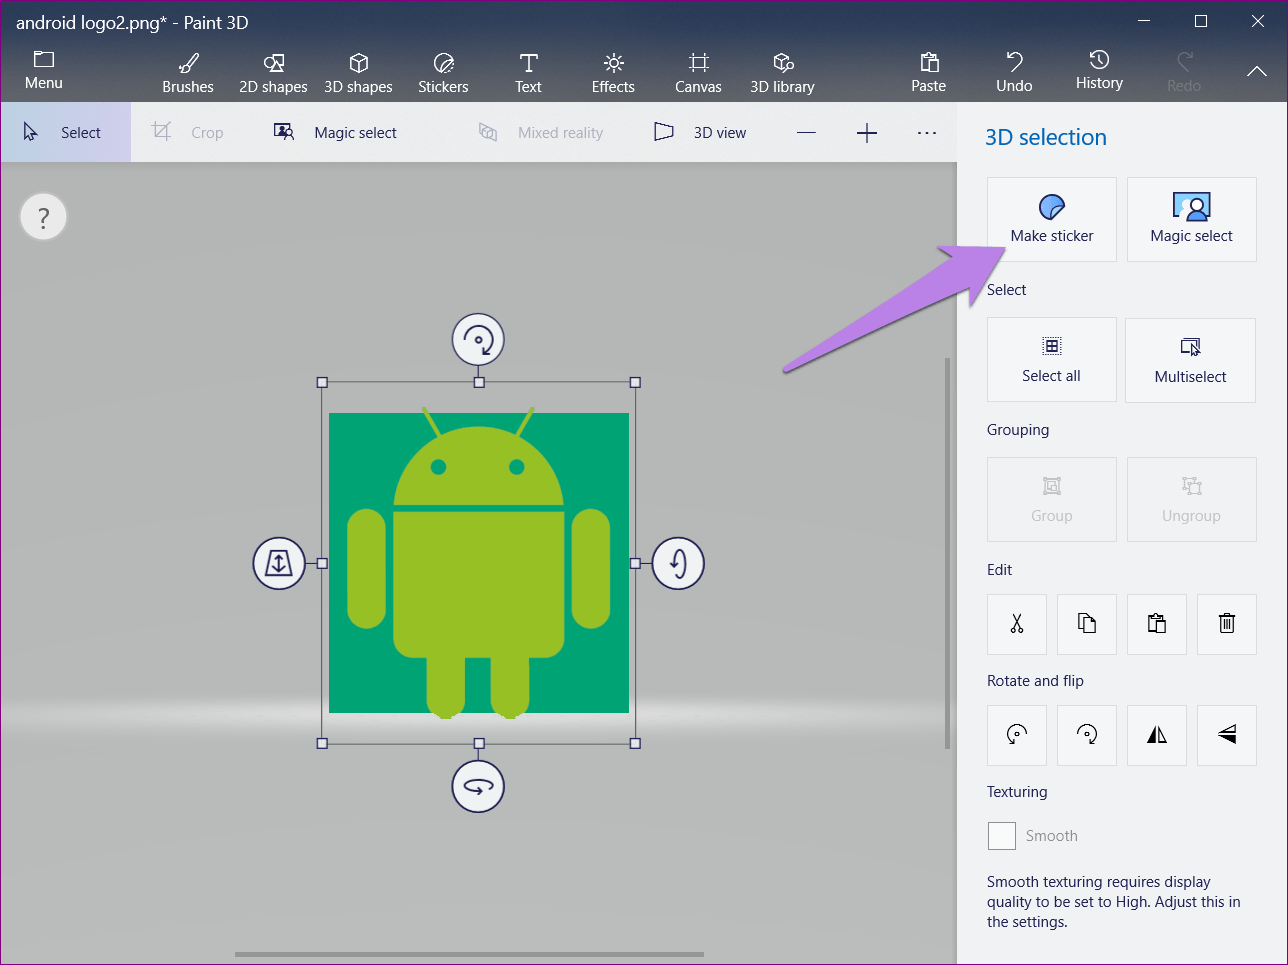 How to Change Background Color in Paint 3D.